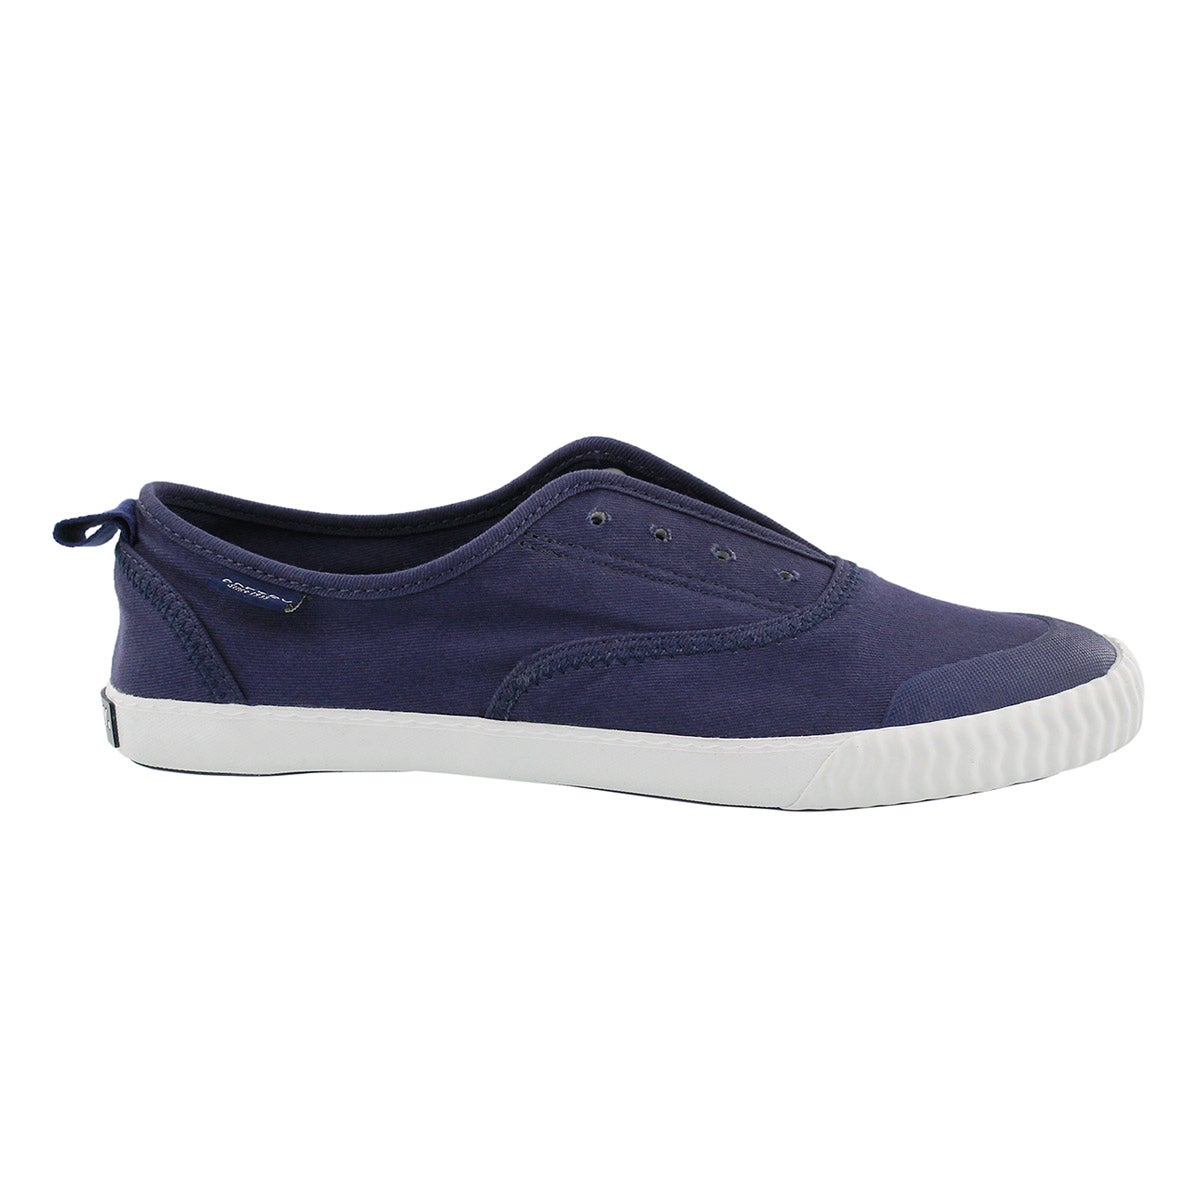 Lds Sayel Clew navy wash sneaker